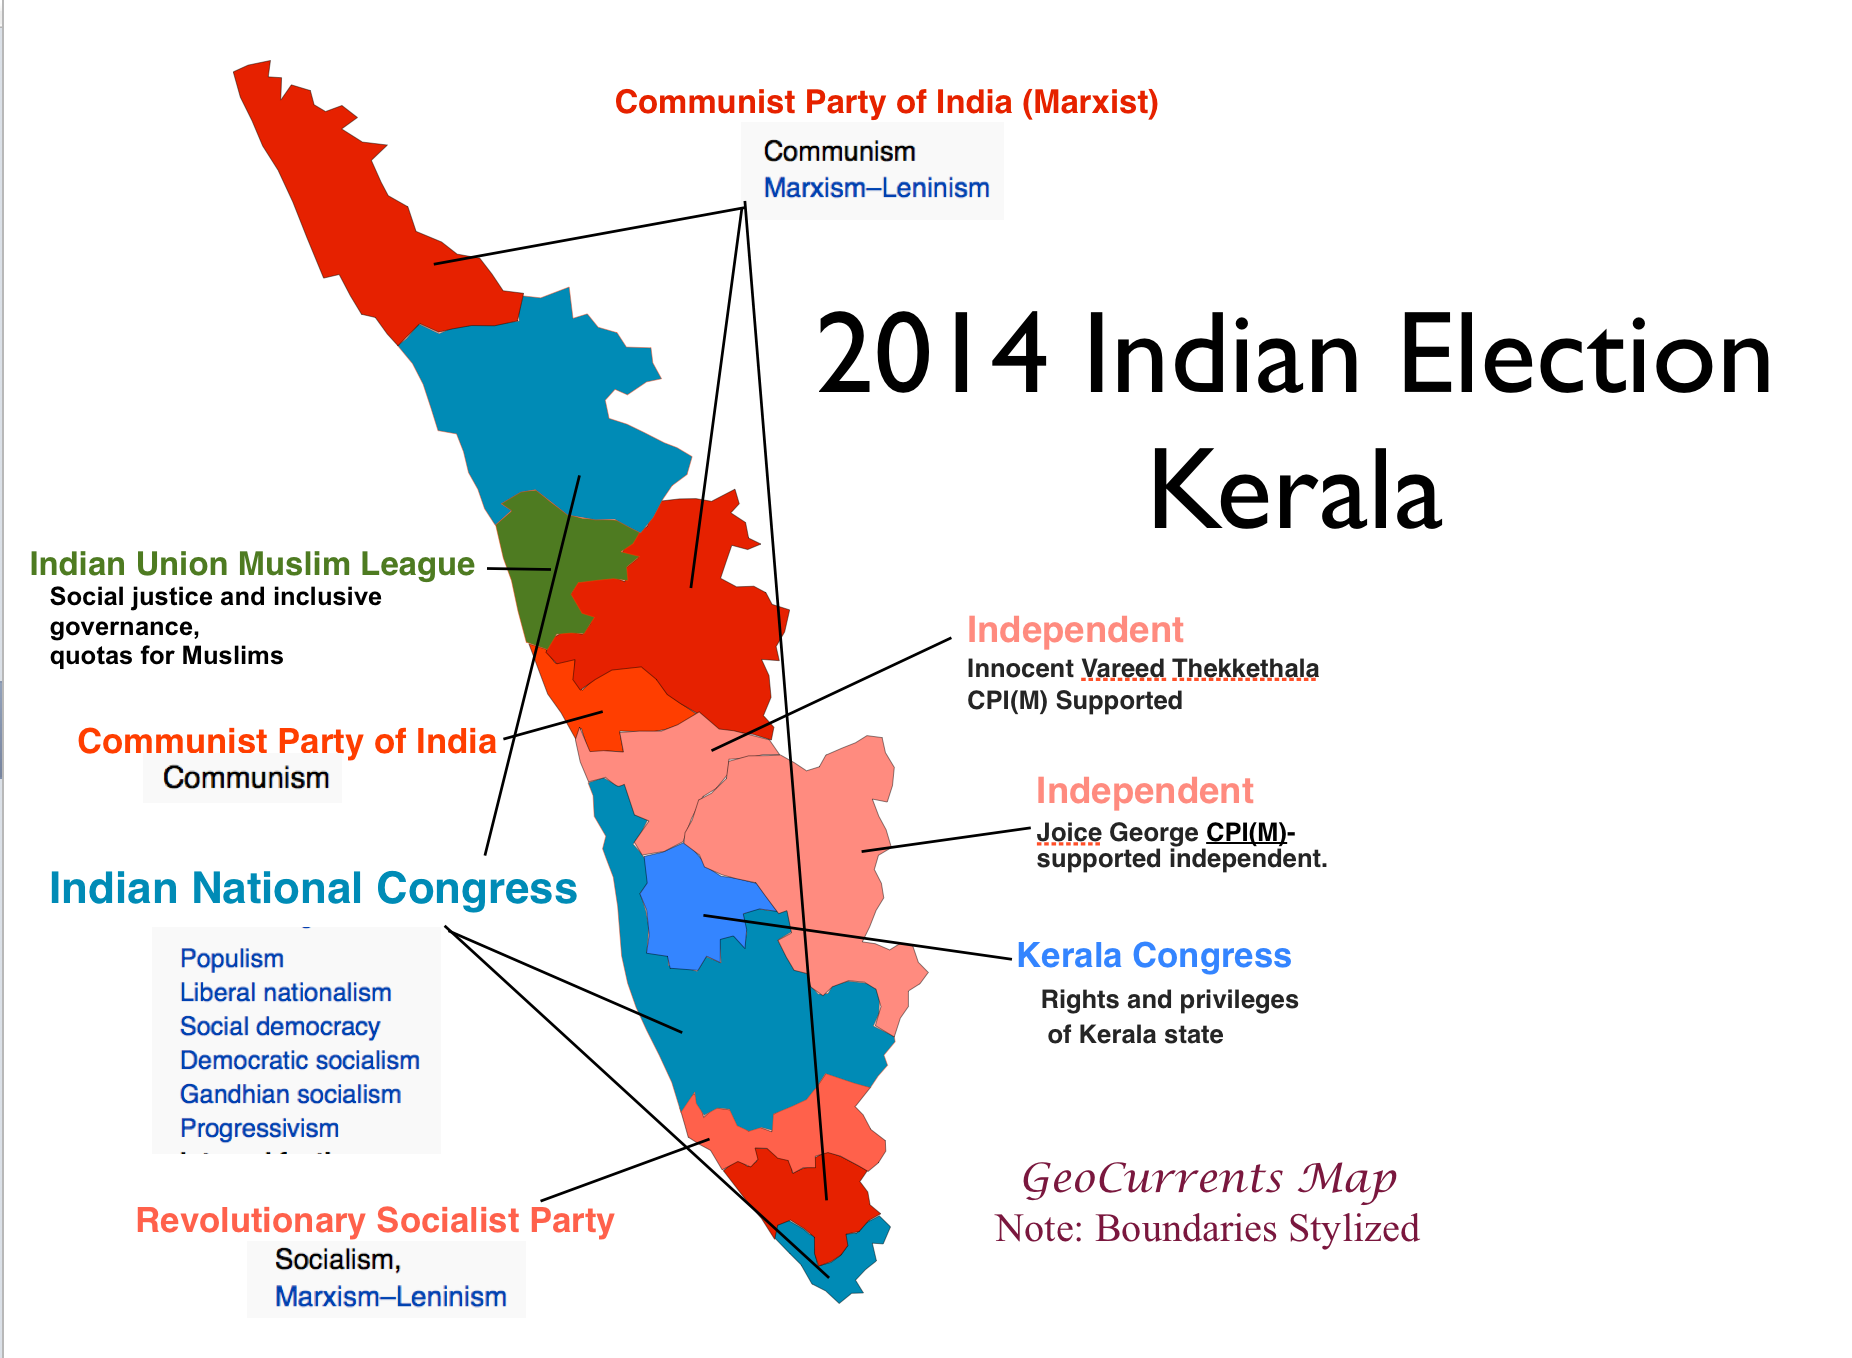 Political Parties By State Map.Geocurrents Maps Of India Geocurrents